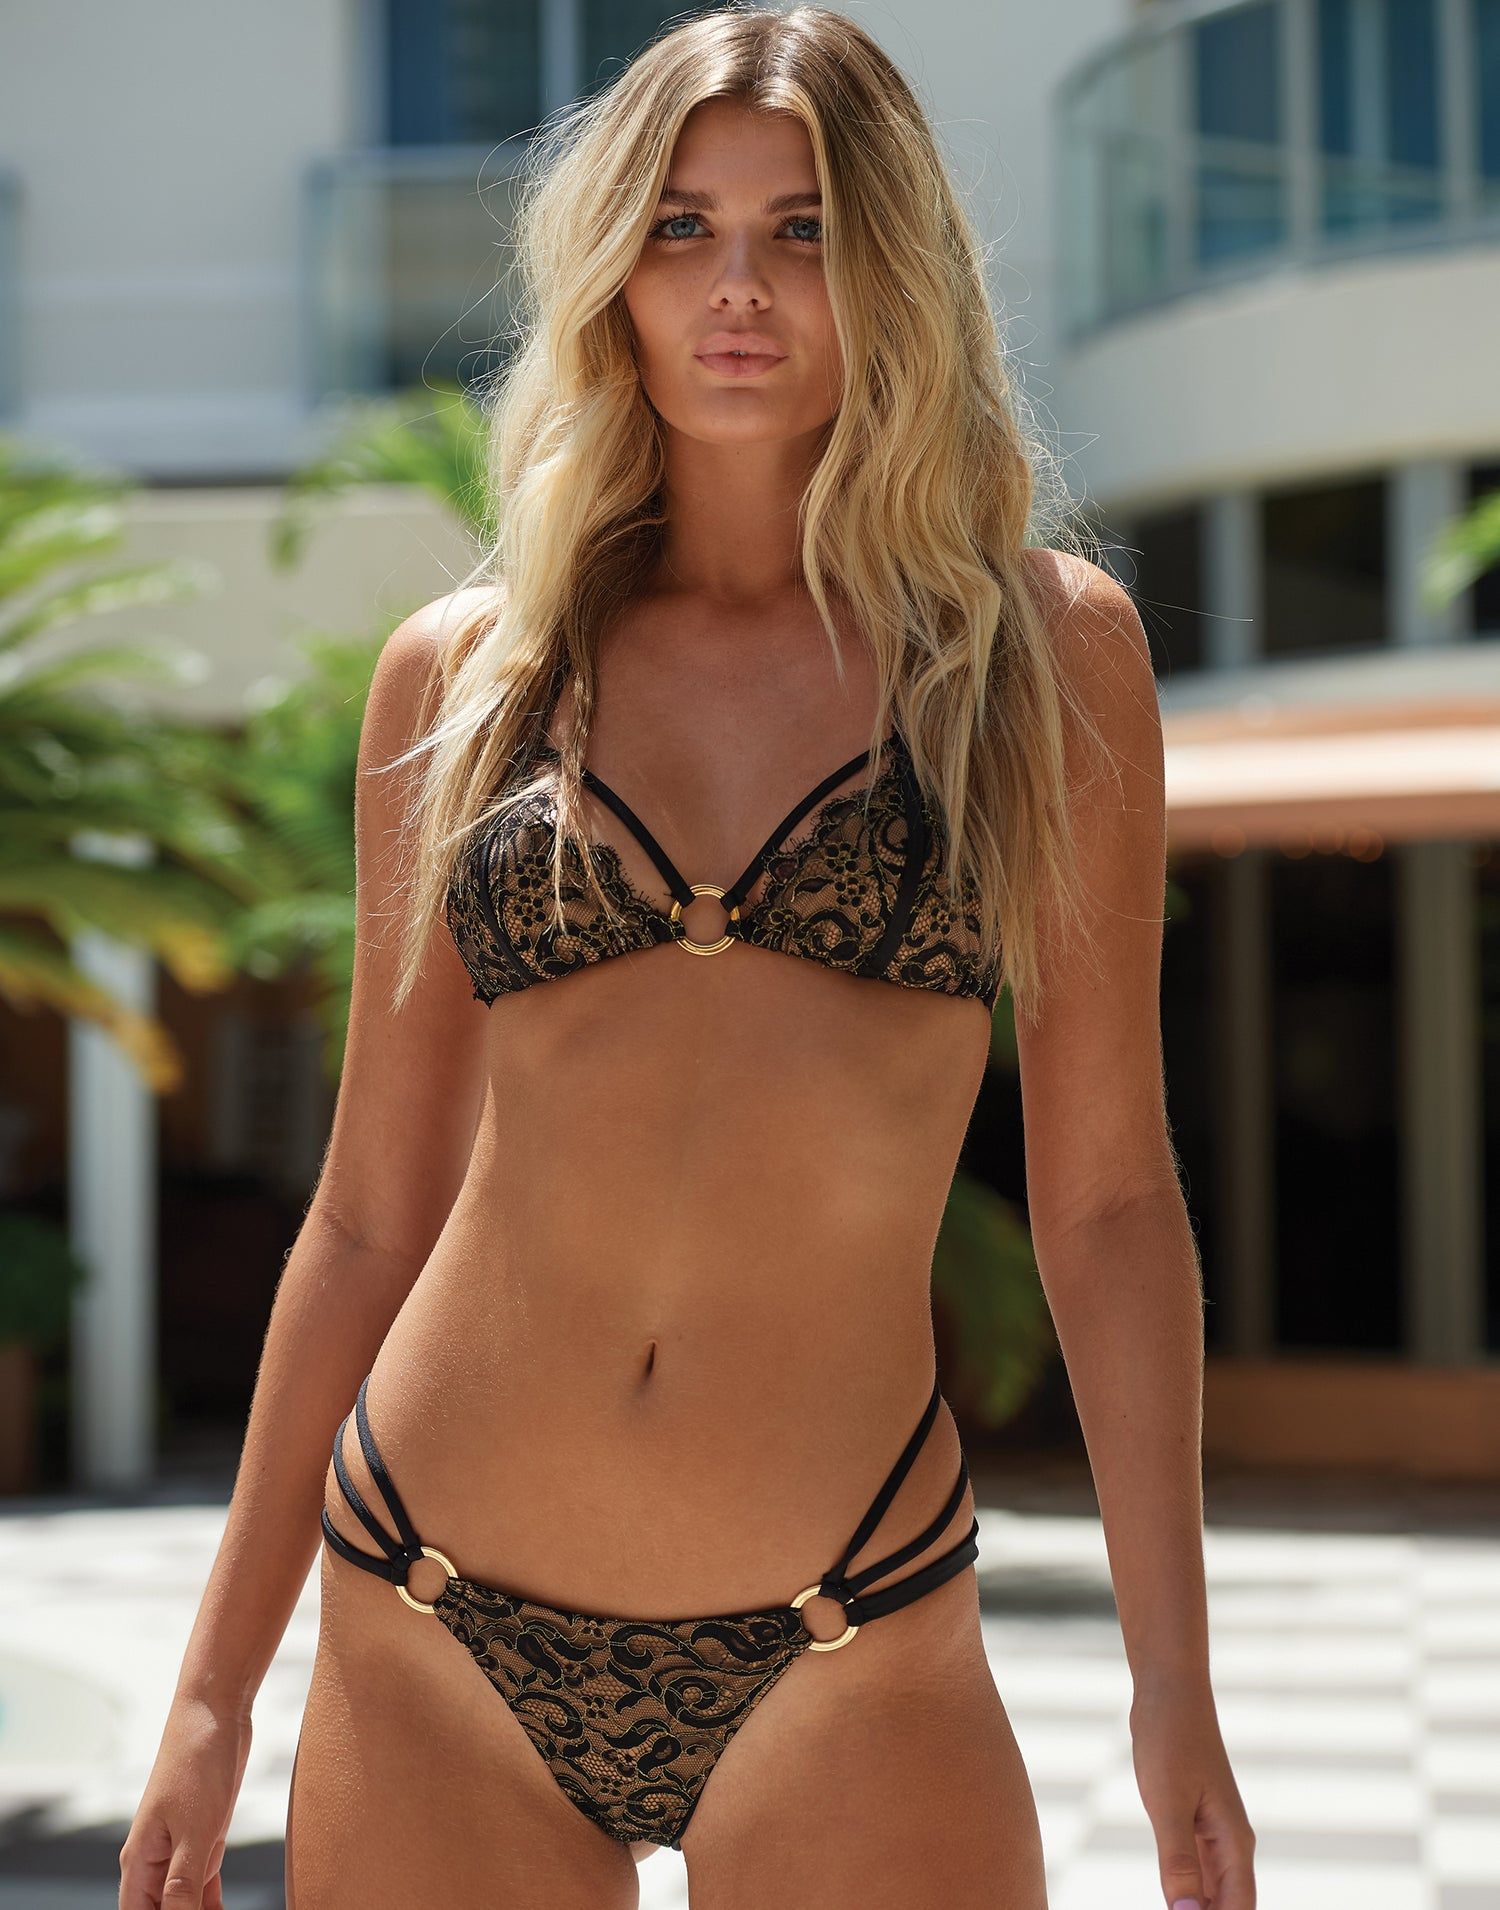 Gunpowder and Lace Triangle Bikini Top in Black - Runway View